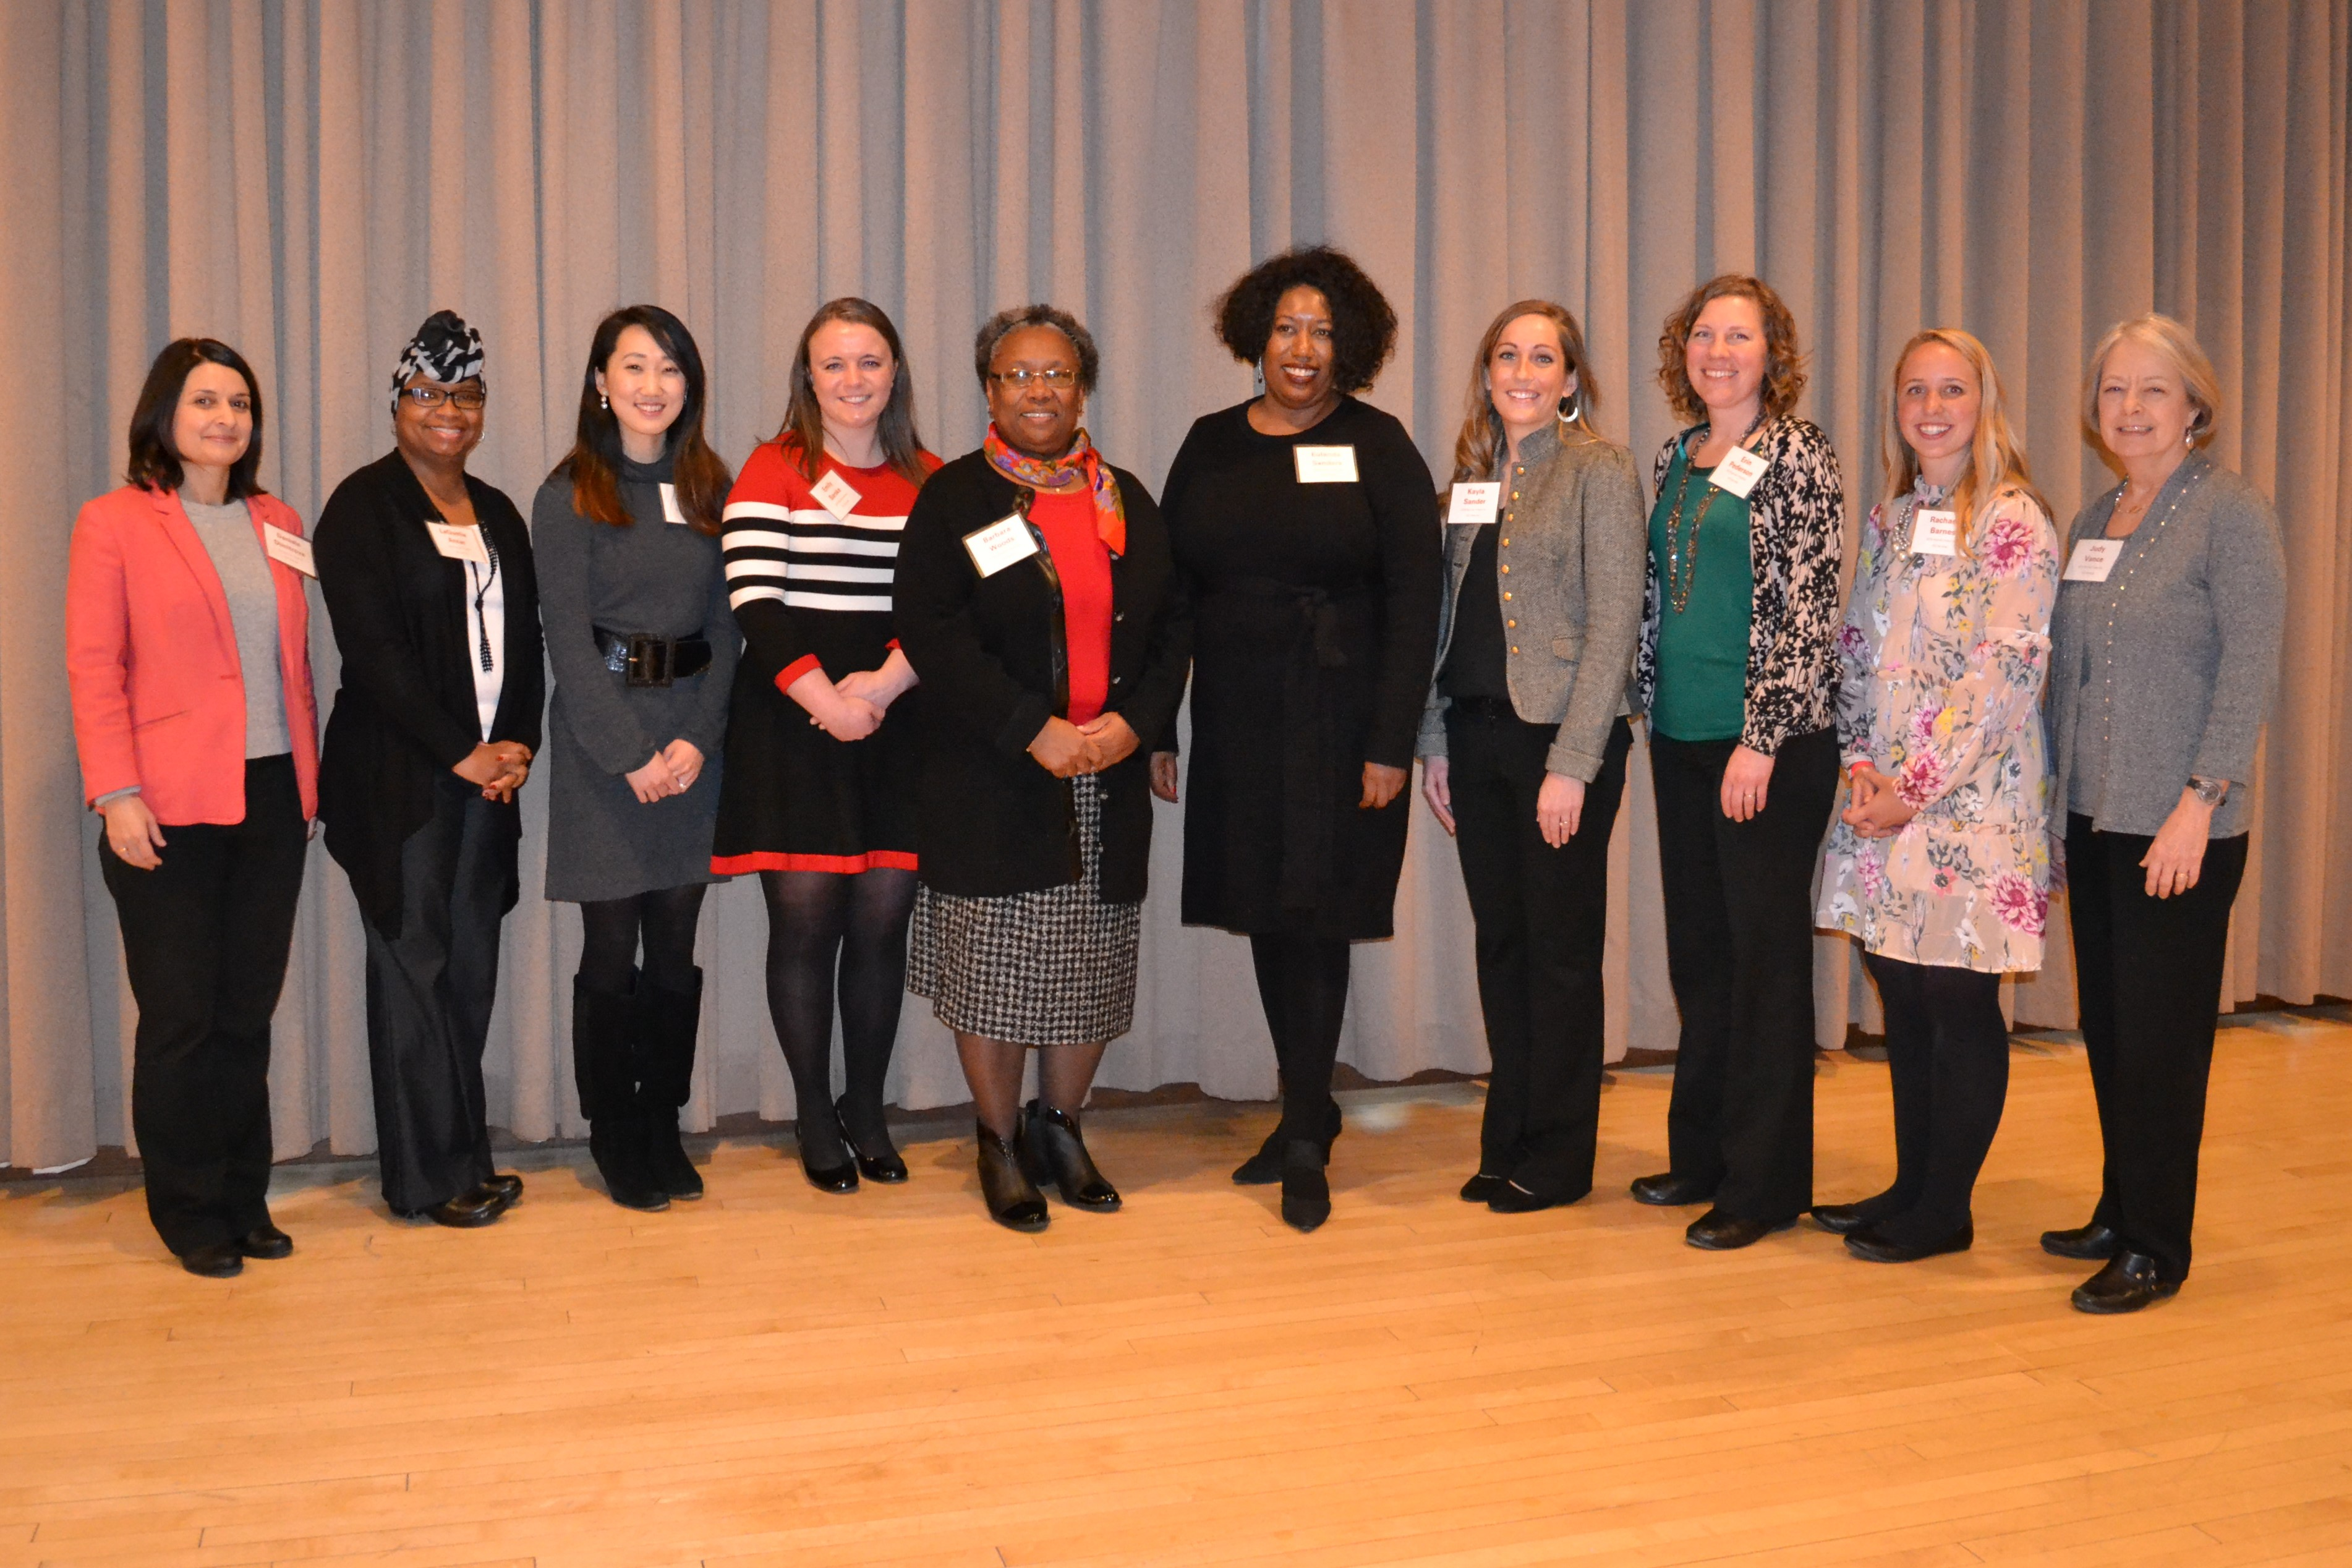 2018 honorees, left to right: Daniela Dimitrova, LeQuetia Ancar, Stacy Ko, Emily Barske, Barbara Woods, Eulanda Sanders, Kayla Sander, Erin Pederson, Rachael Barnes and Judy Vance. Not pictured: 2018 honorees Monica Howard and Sherri Angstrom.